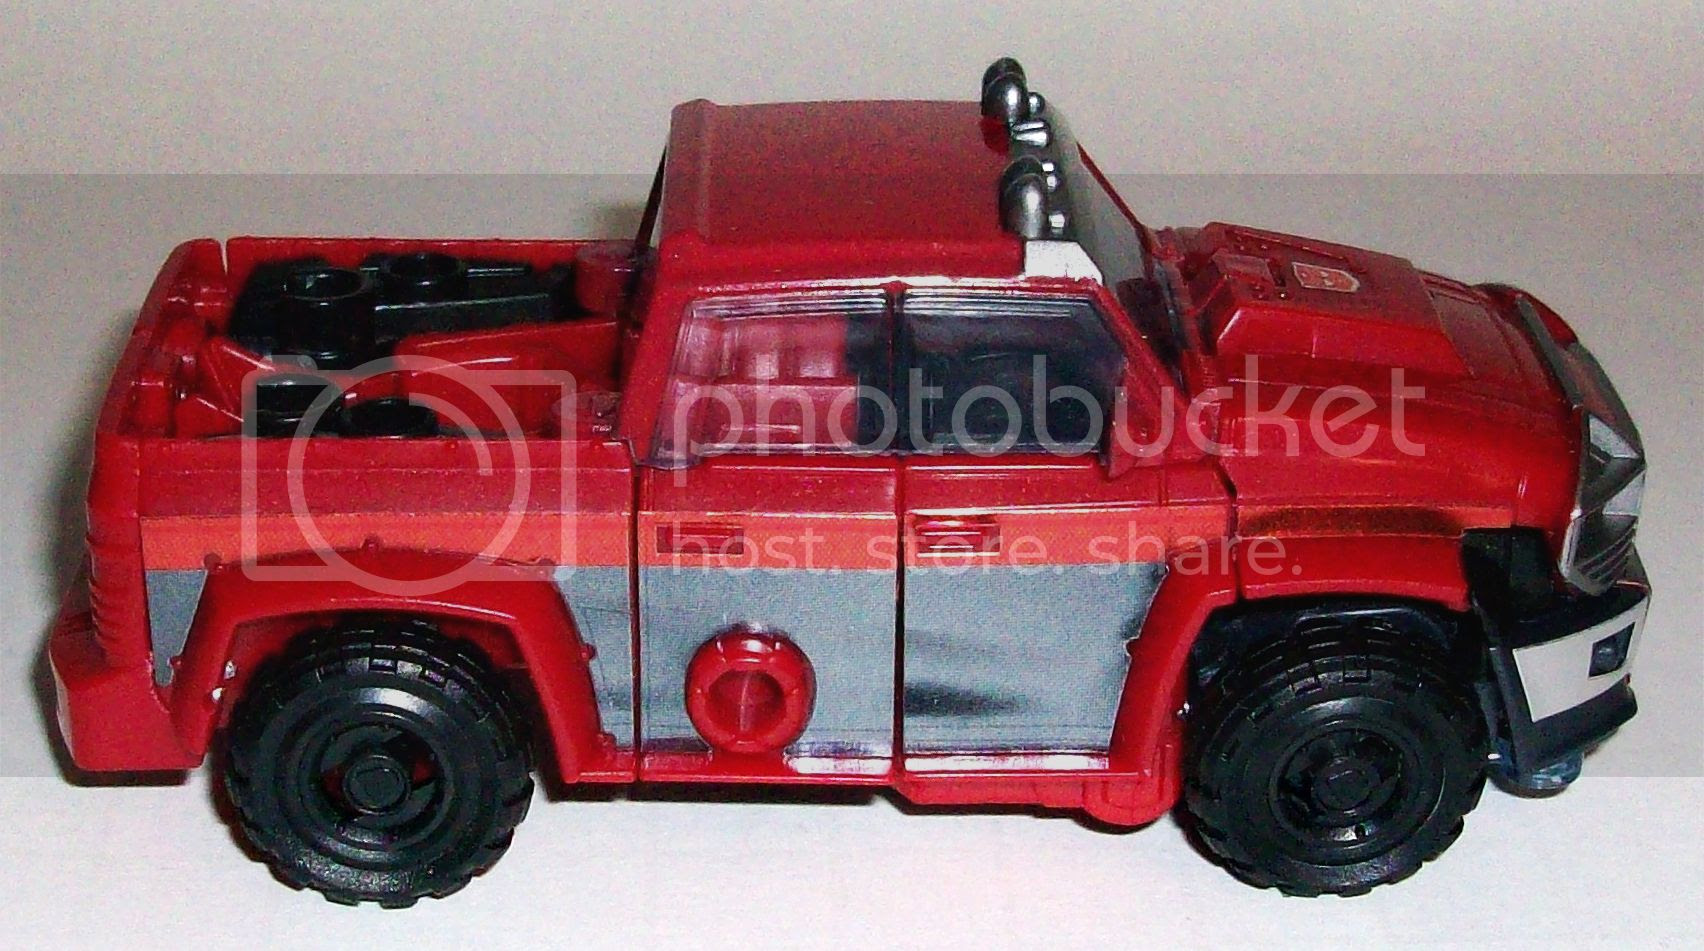 Ironhide AM-20 photo 193_zps3abcb632.jpg